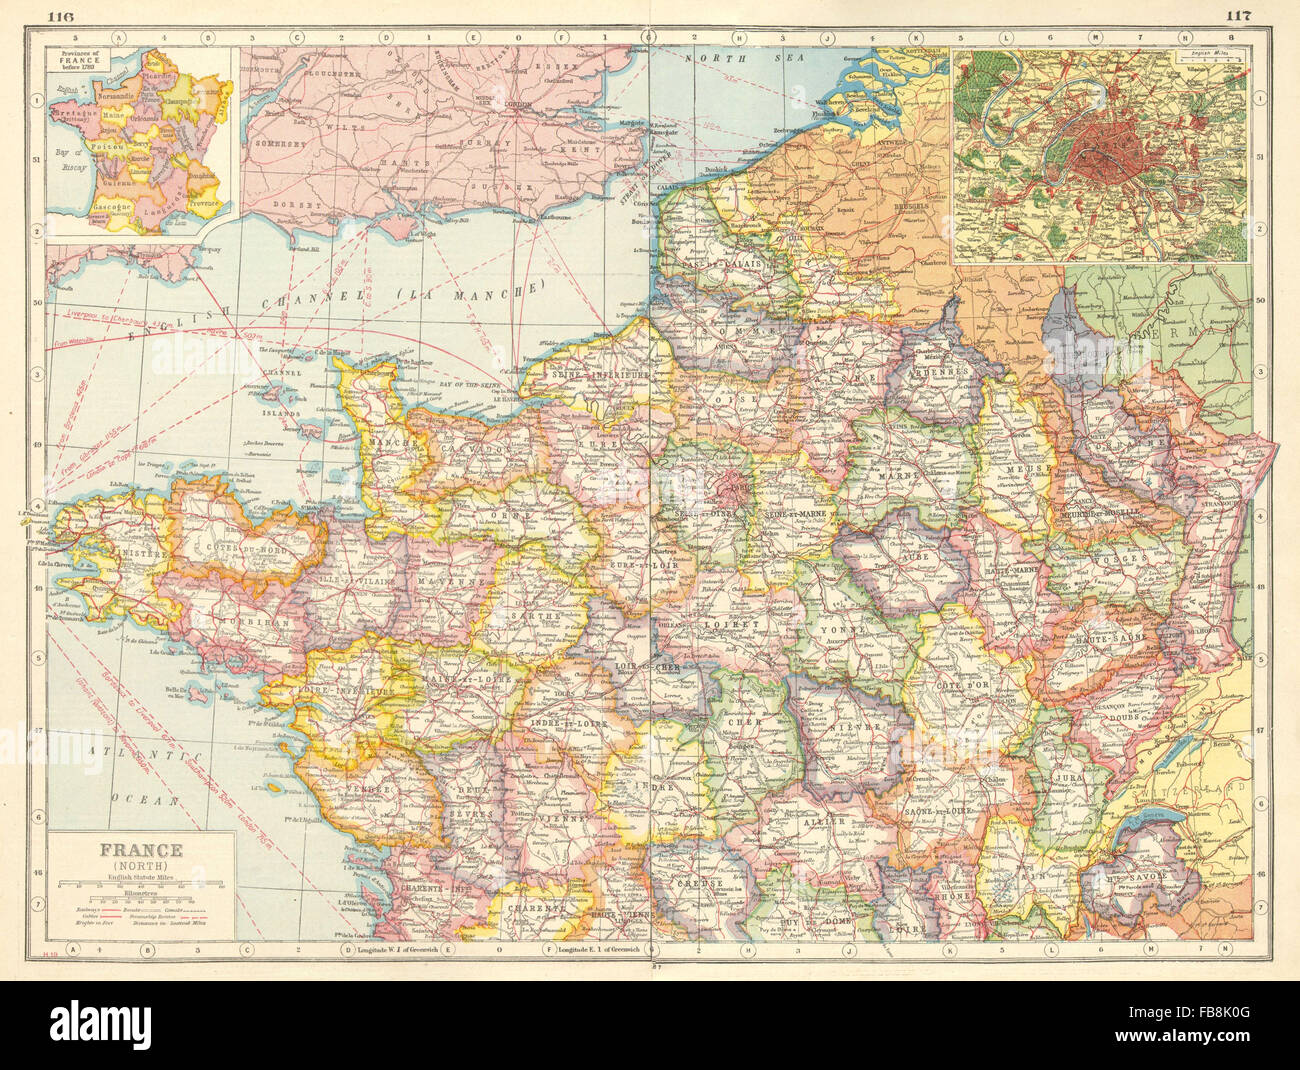 Map Of France In 1789.Northern France Departements Inset Provinces Pre 1789 Paris Plan